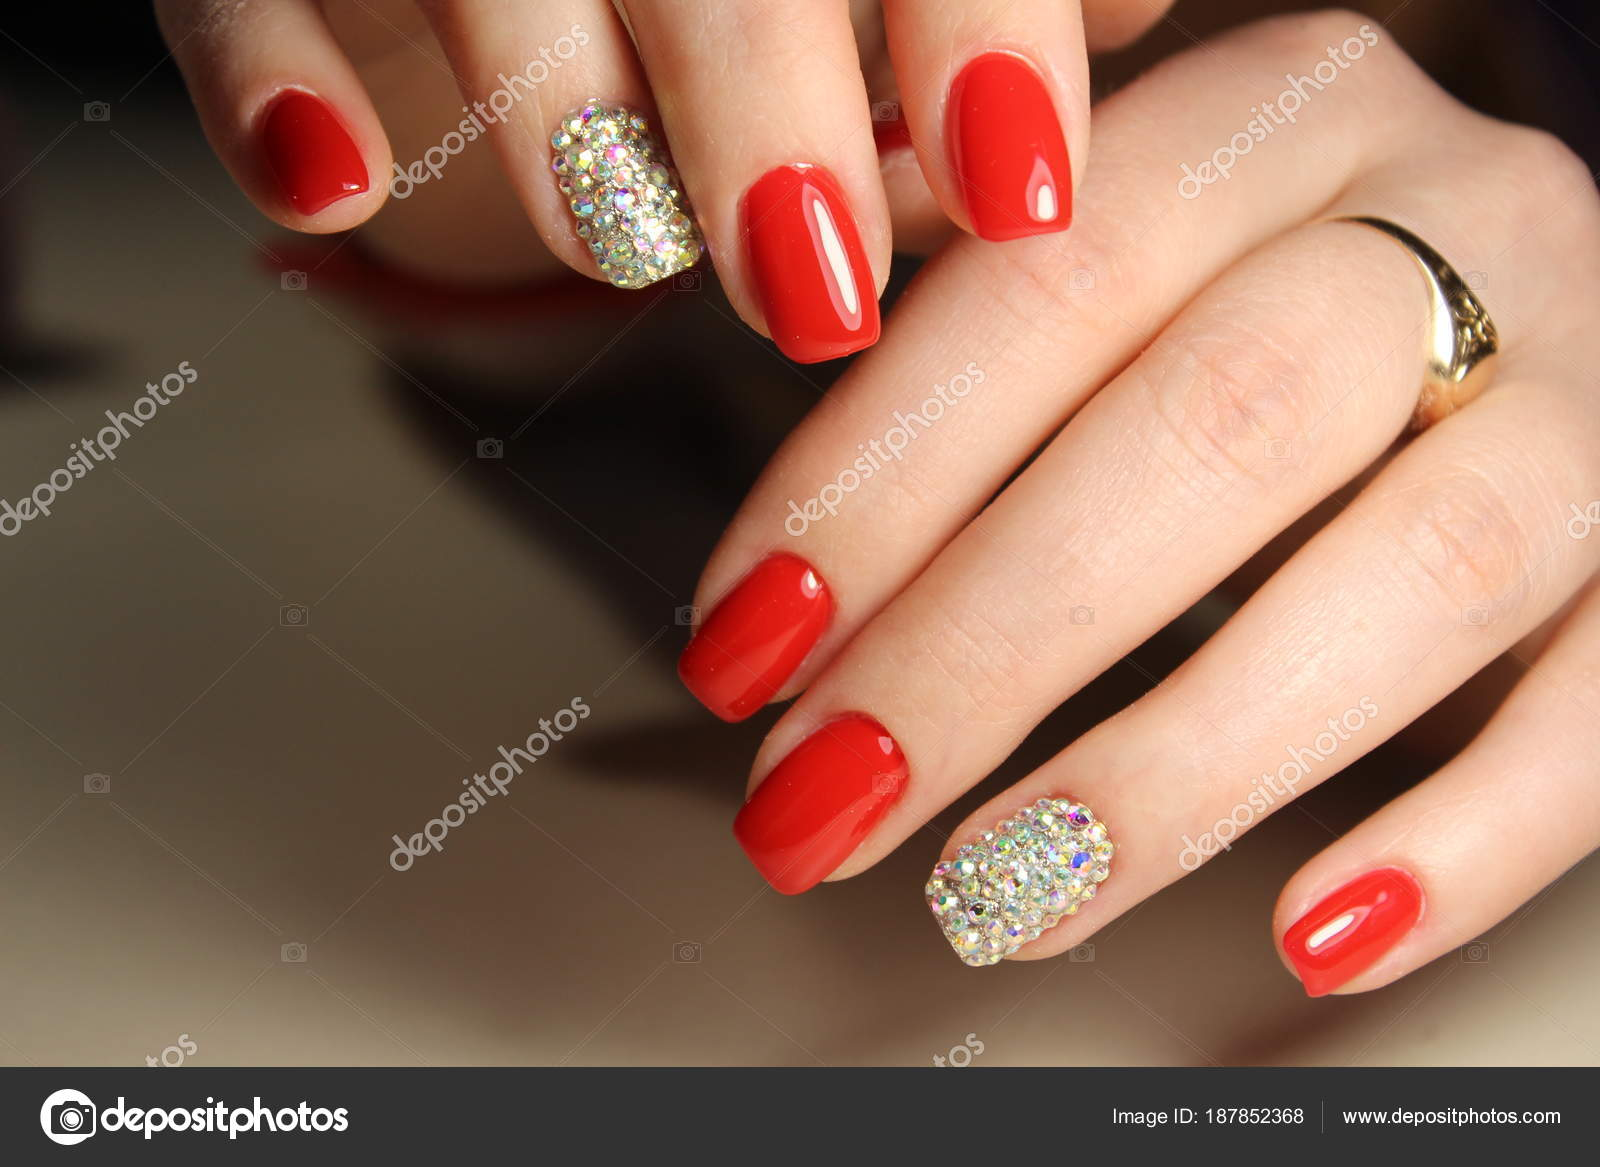 Red Nails With Rhinestones Stock Photo